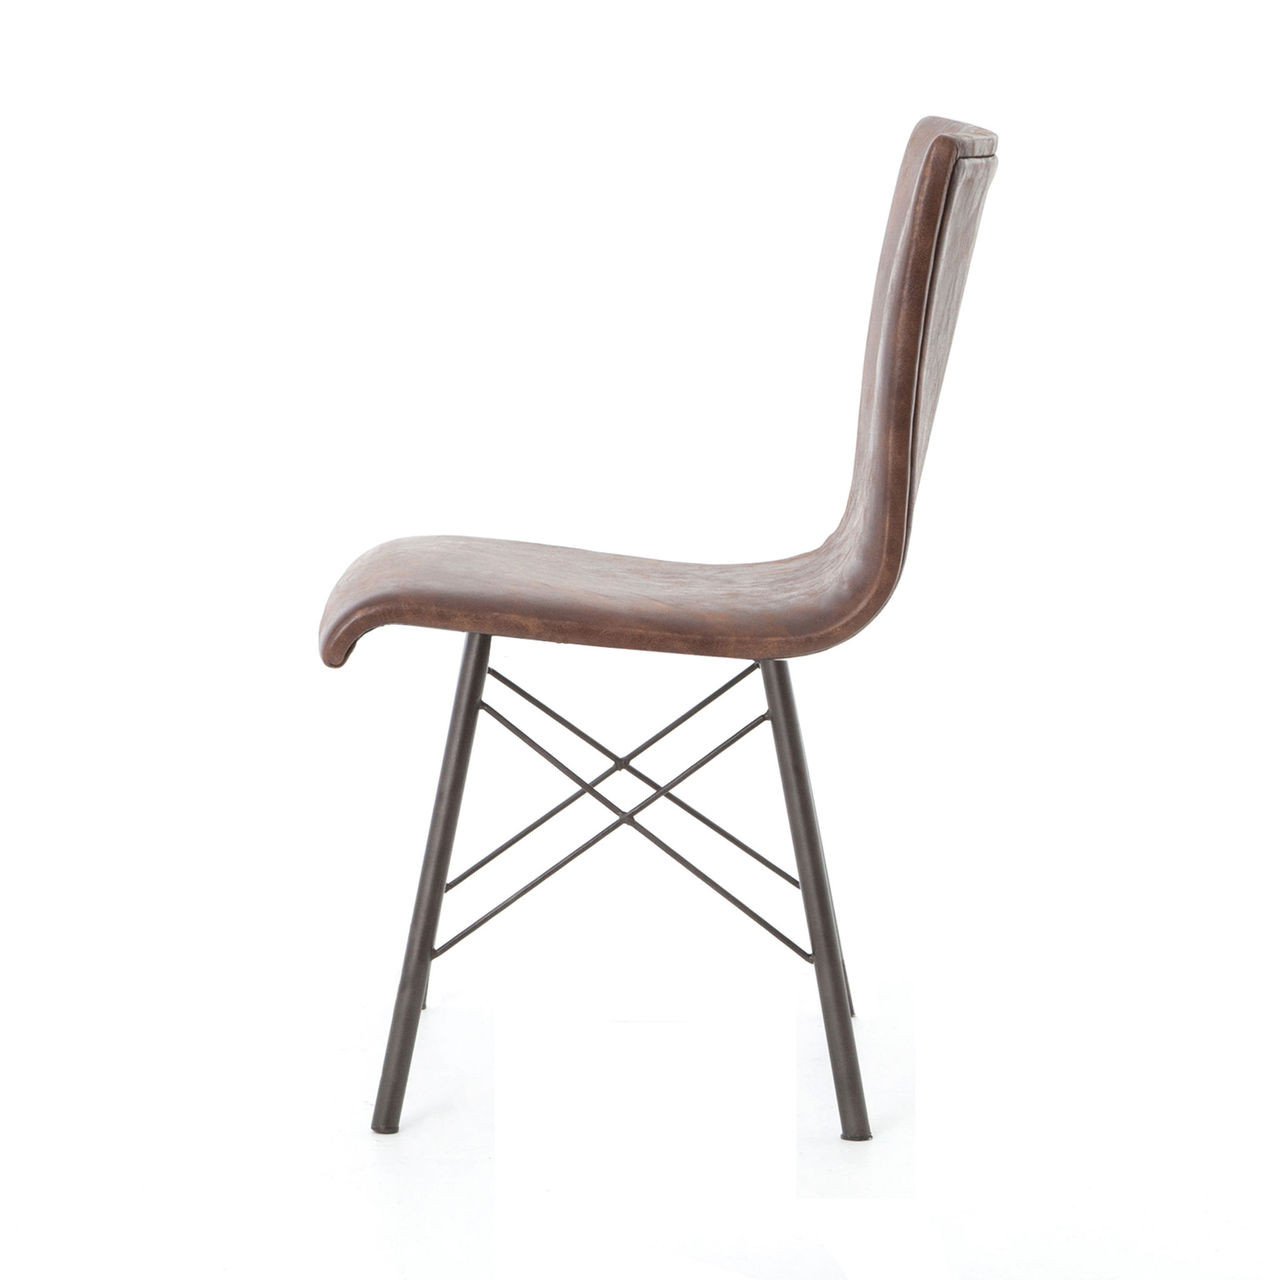 Distressed Dining Room Chairs: Diaw Distressed Brown Leather Dining Chair